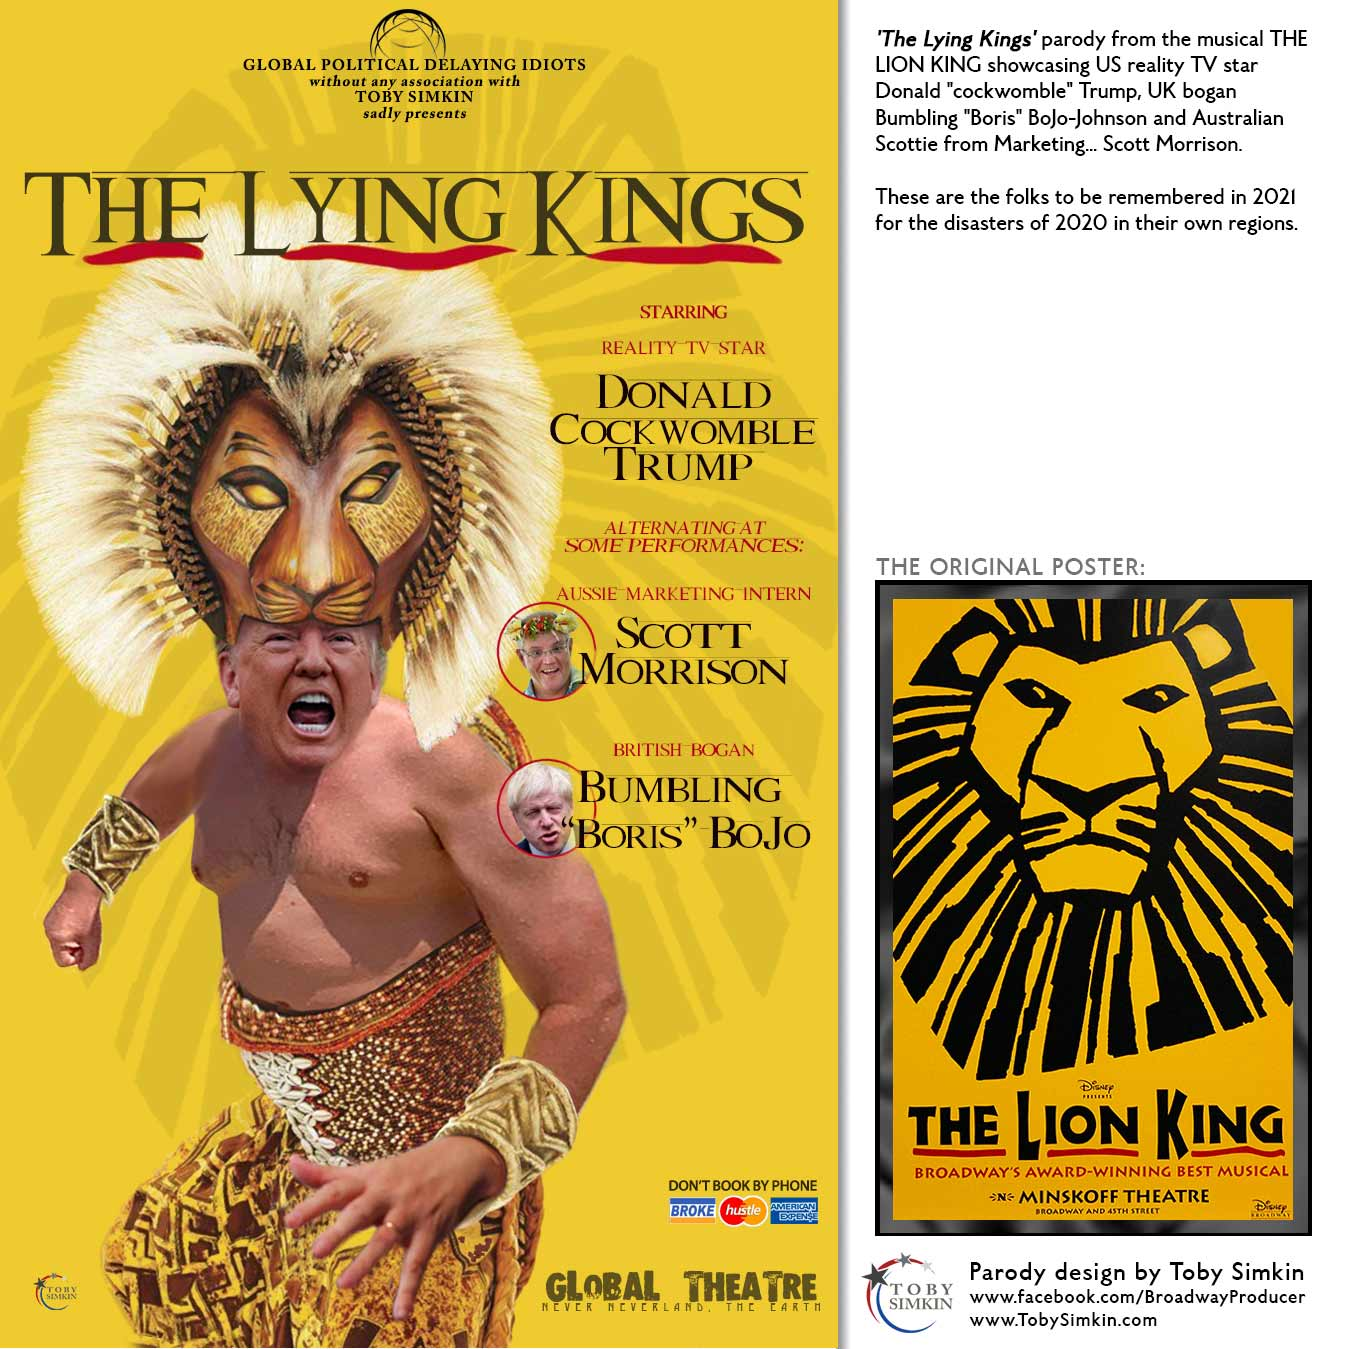 The Lion King Broadway West End Poster Coronavirus Covid 19 Parody Toby Simkin Broadway